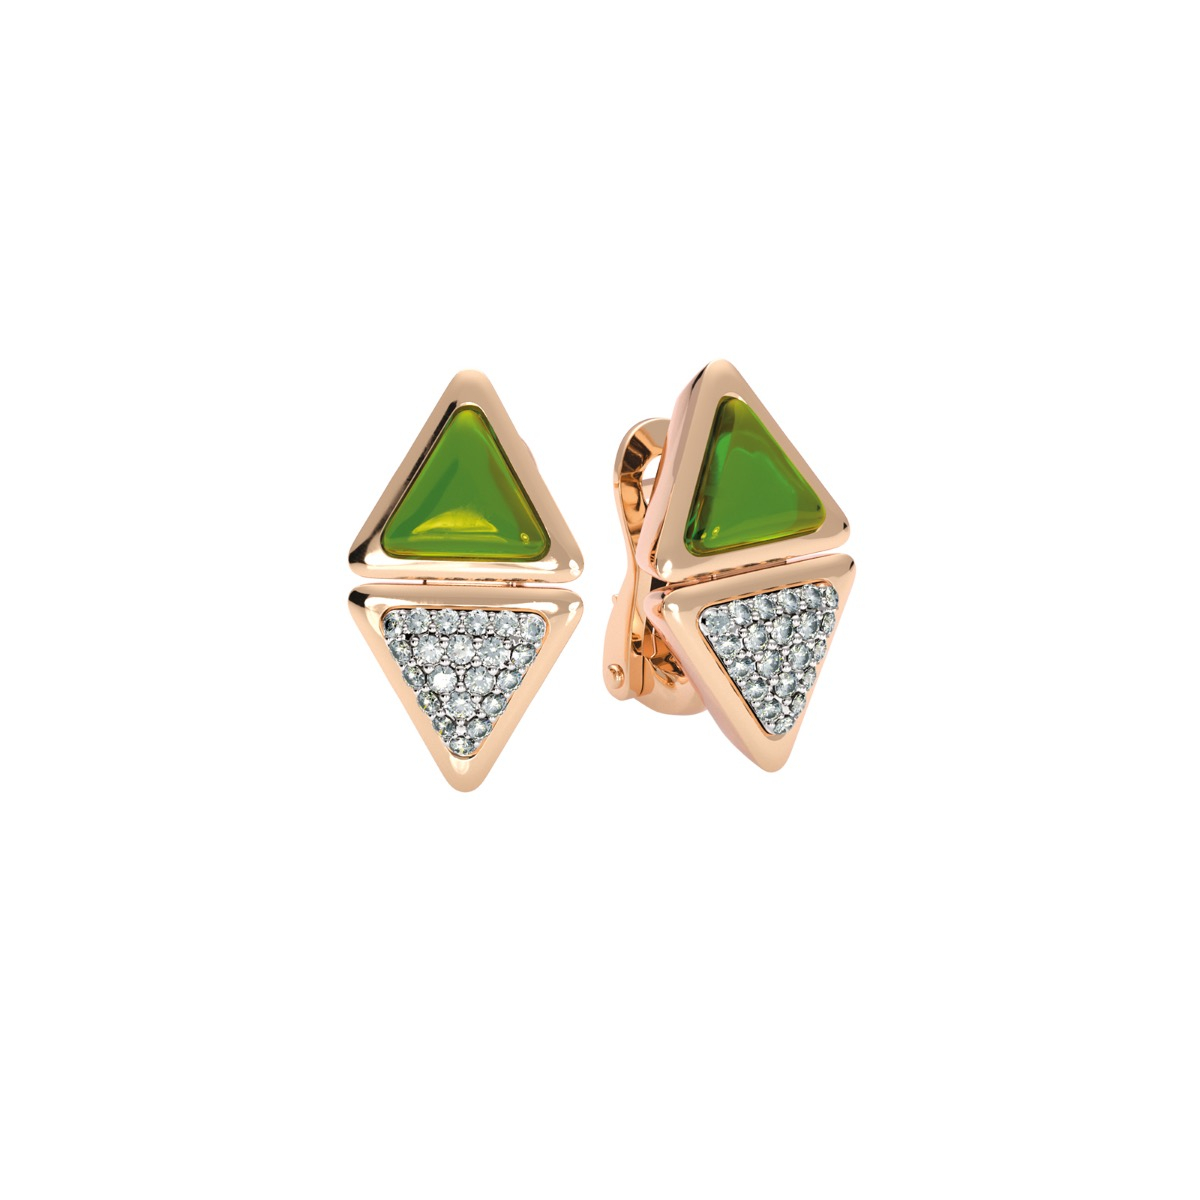 Earrings Short Mirror Exquisite Rose Gold  Green Tourmaline and Diamonds